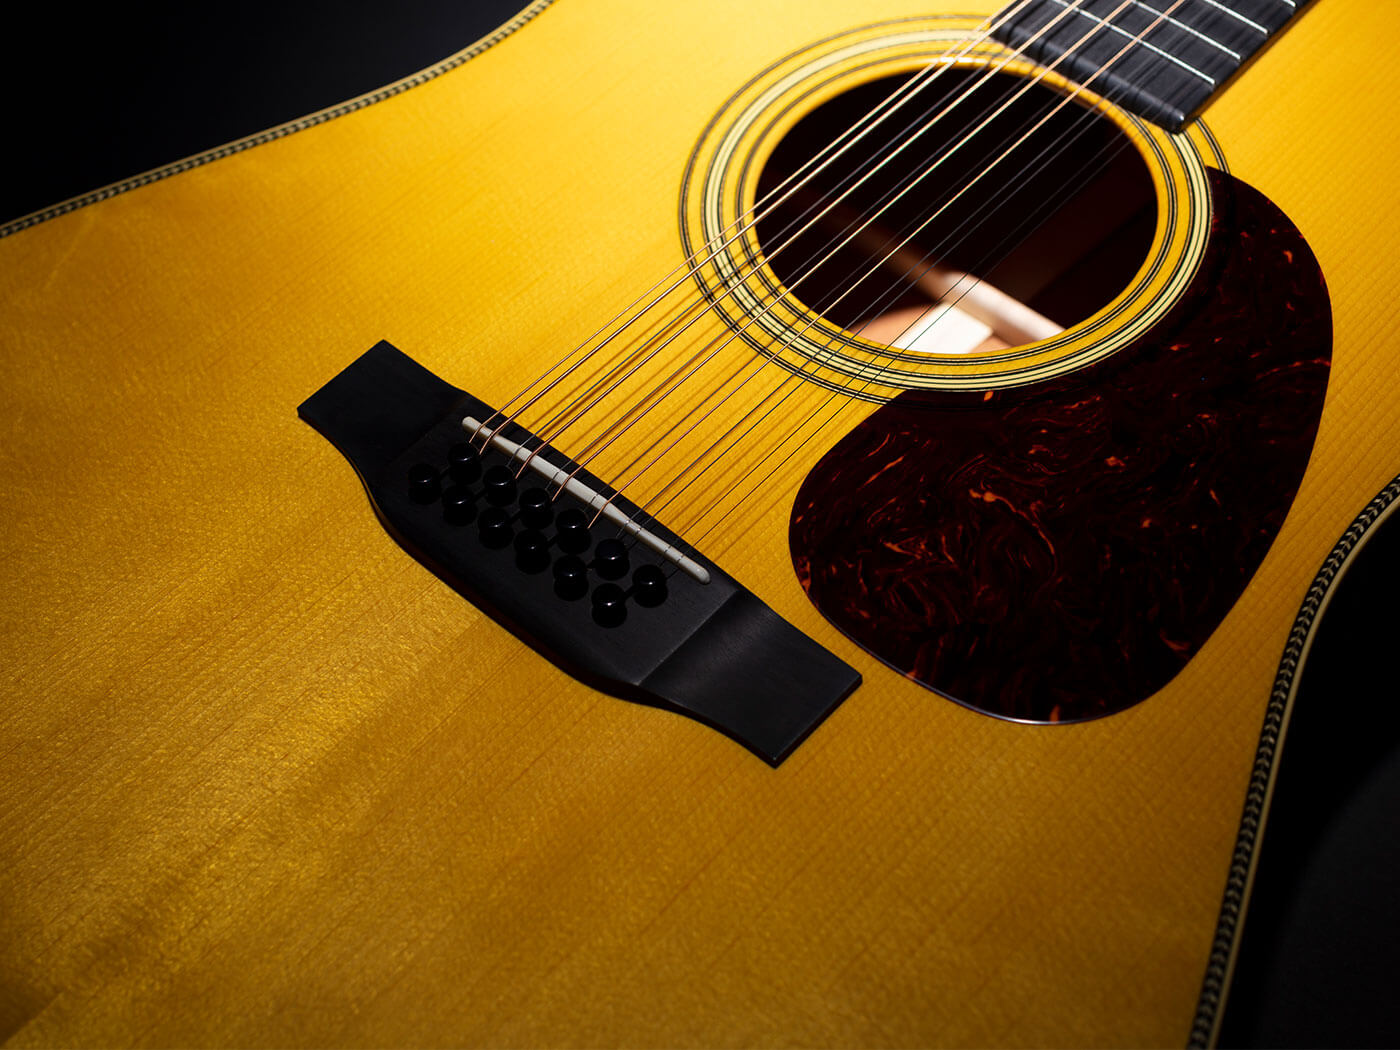 Martin D-35 12 String David Gilmour signature